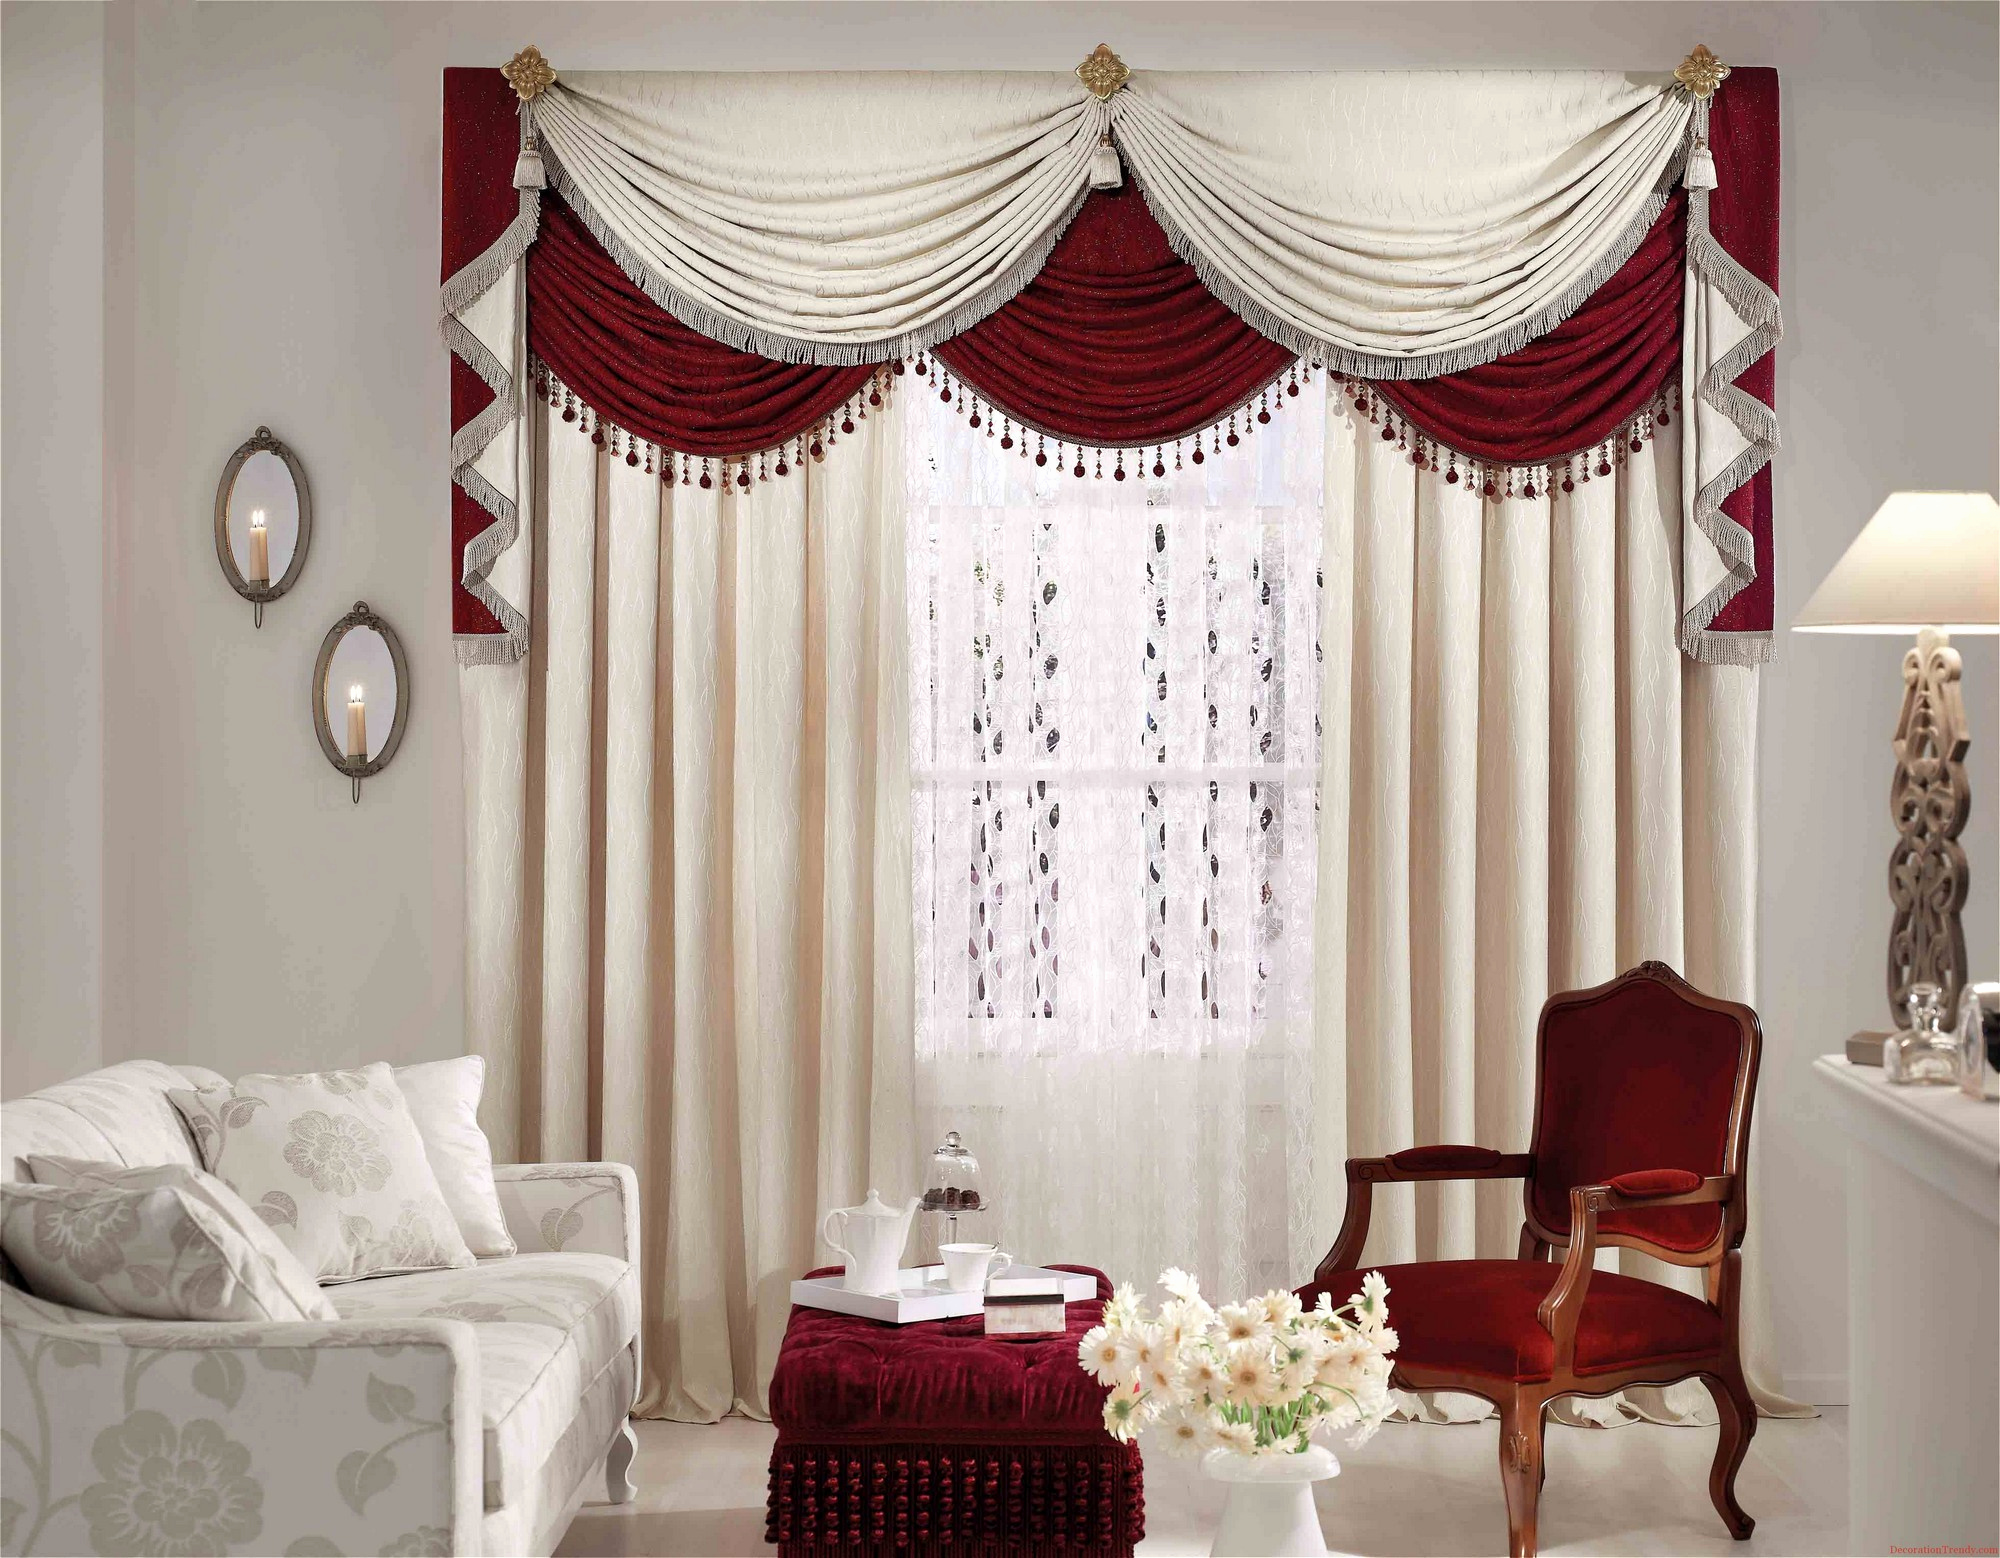 jcpenney living room curtains Curtains For Living Room Jcpenney Awesome Curtains And Drapes  1558 X 2000